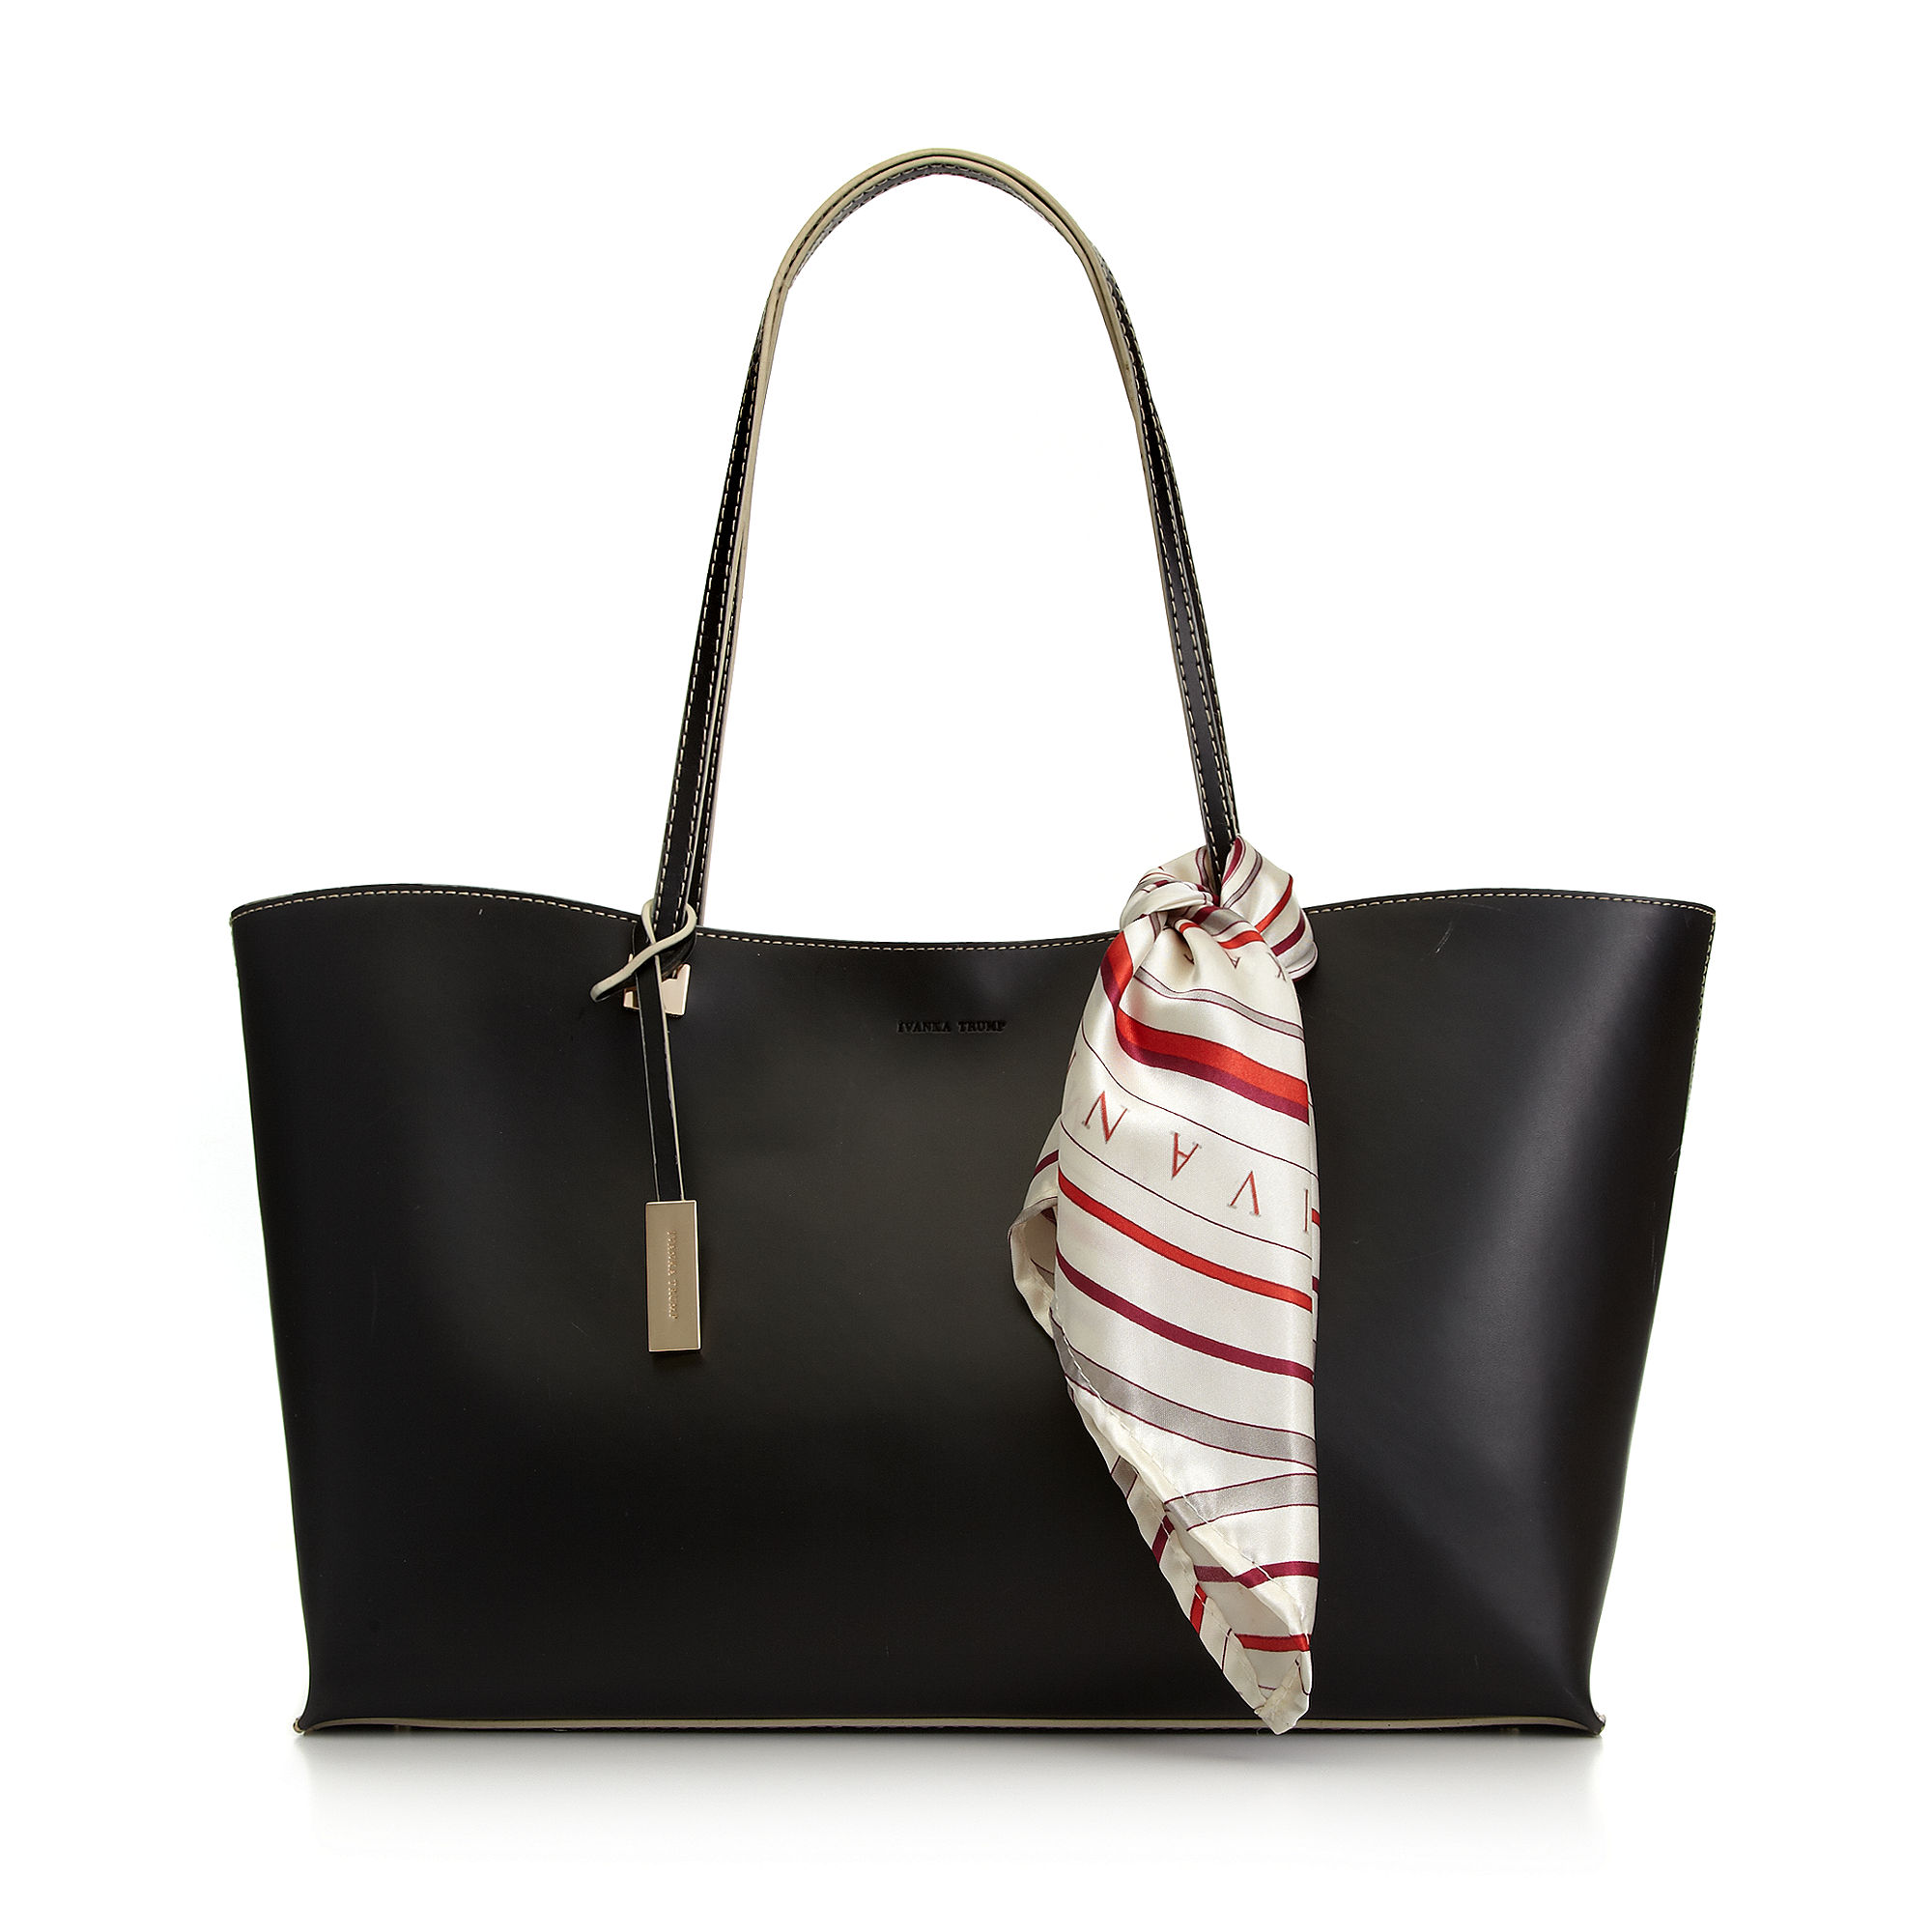 bcbf800b7603 Ivanka Trump Julia Tote with Scarf in Black - Lyst